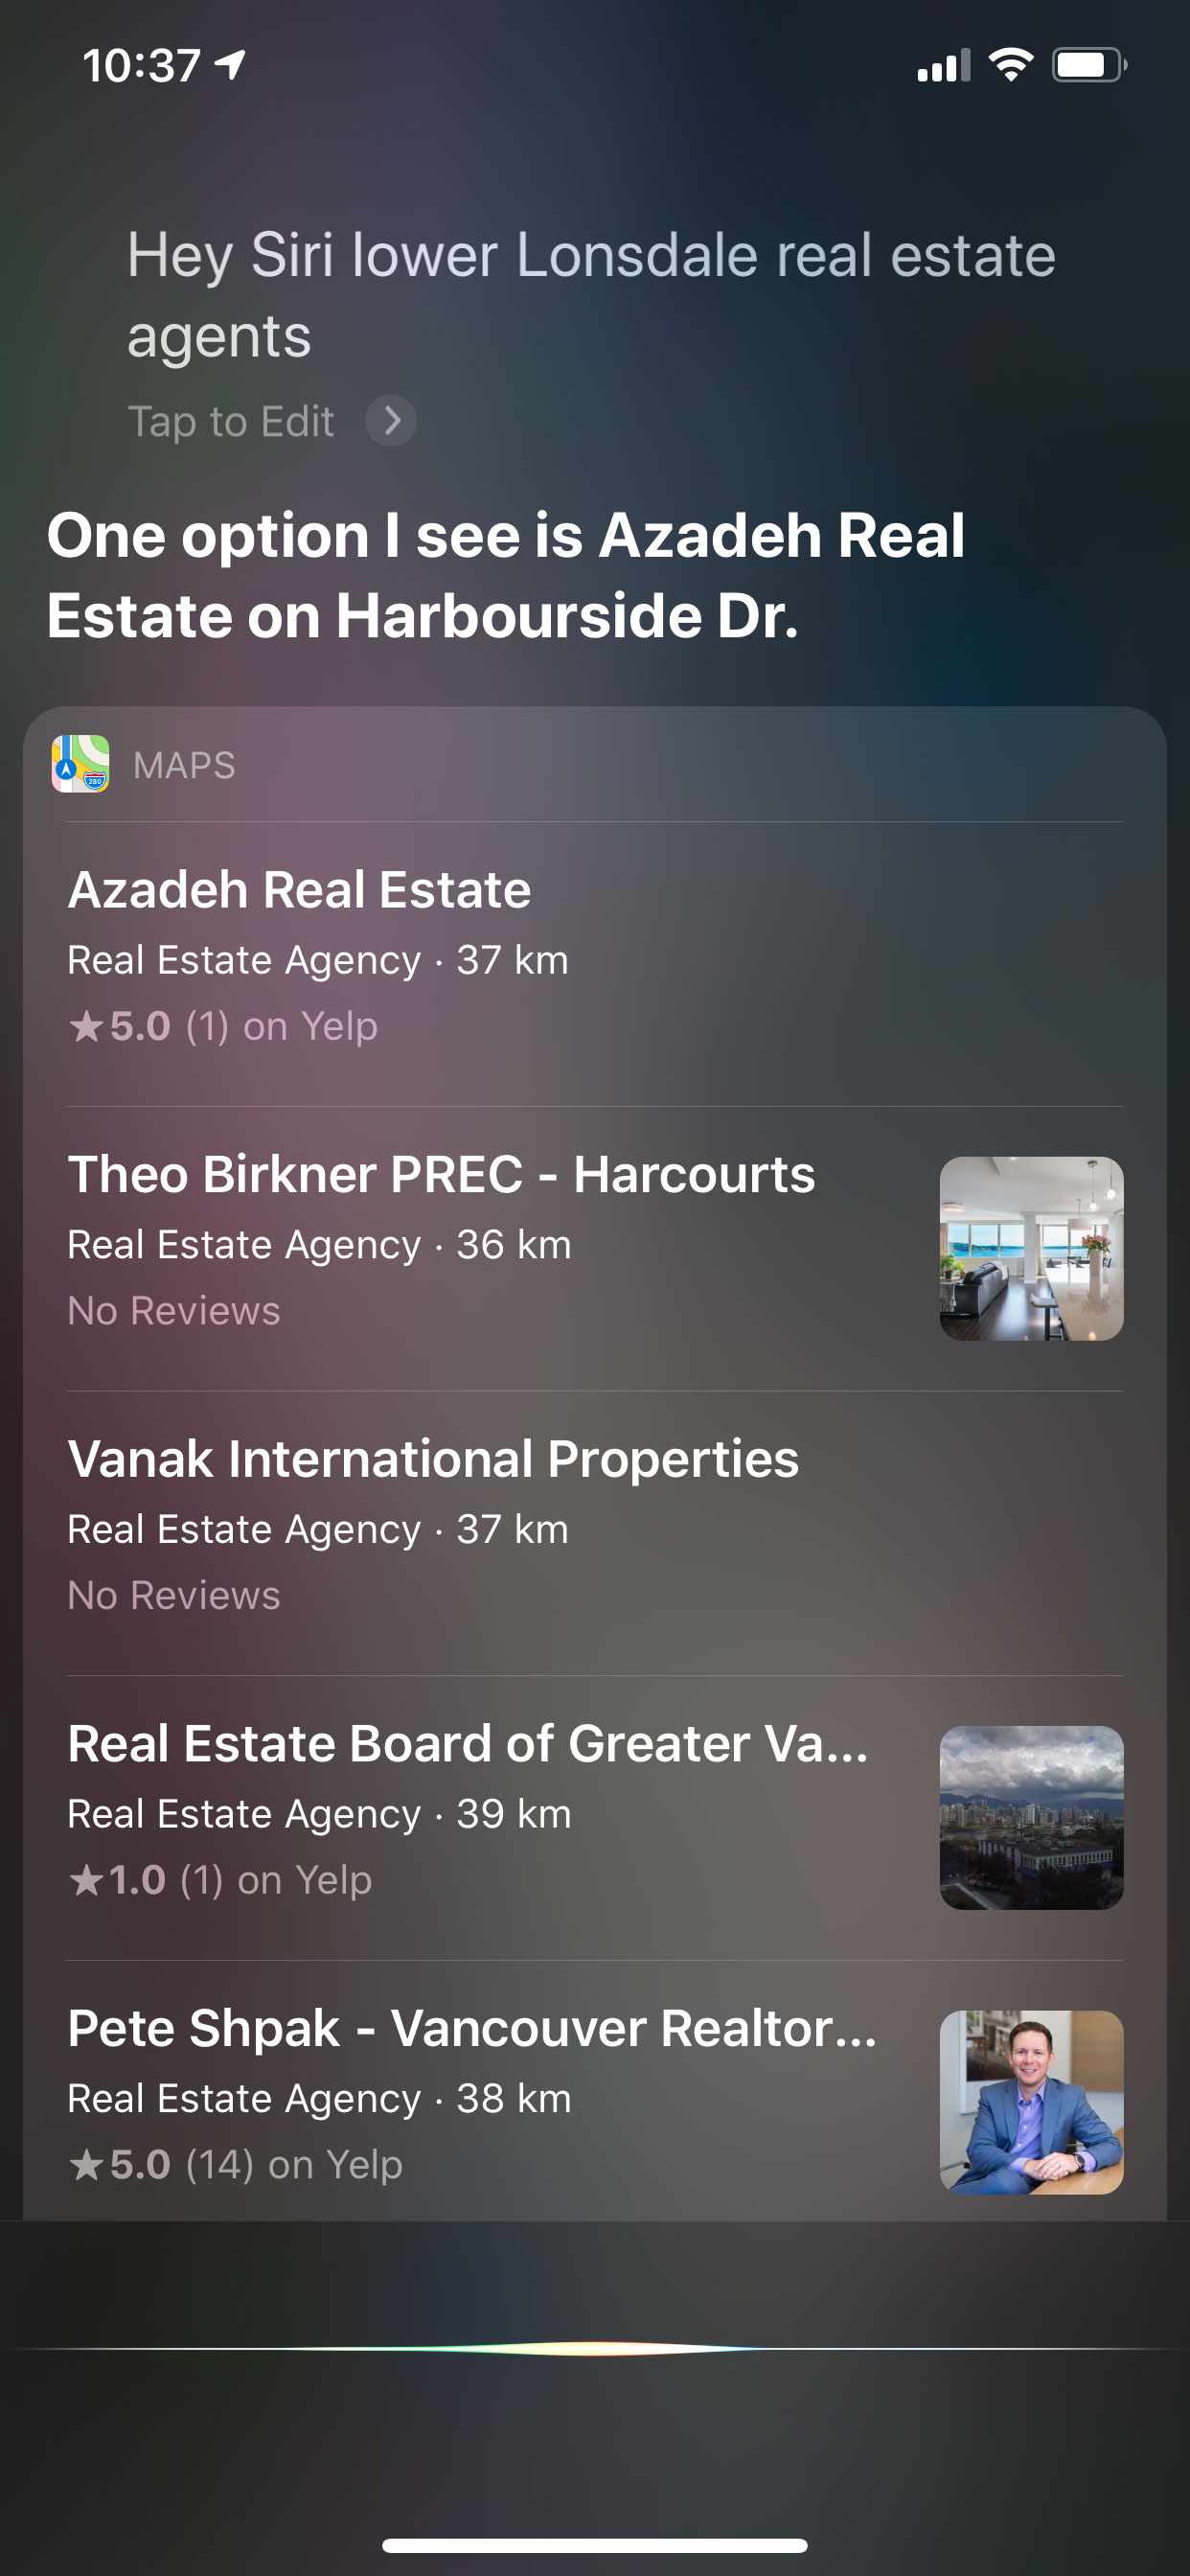 Voice Search - Lower Lonsdale Real Estate Agents